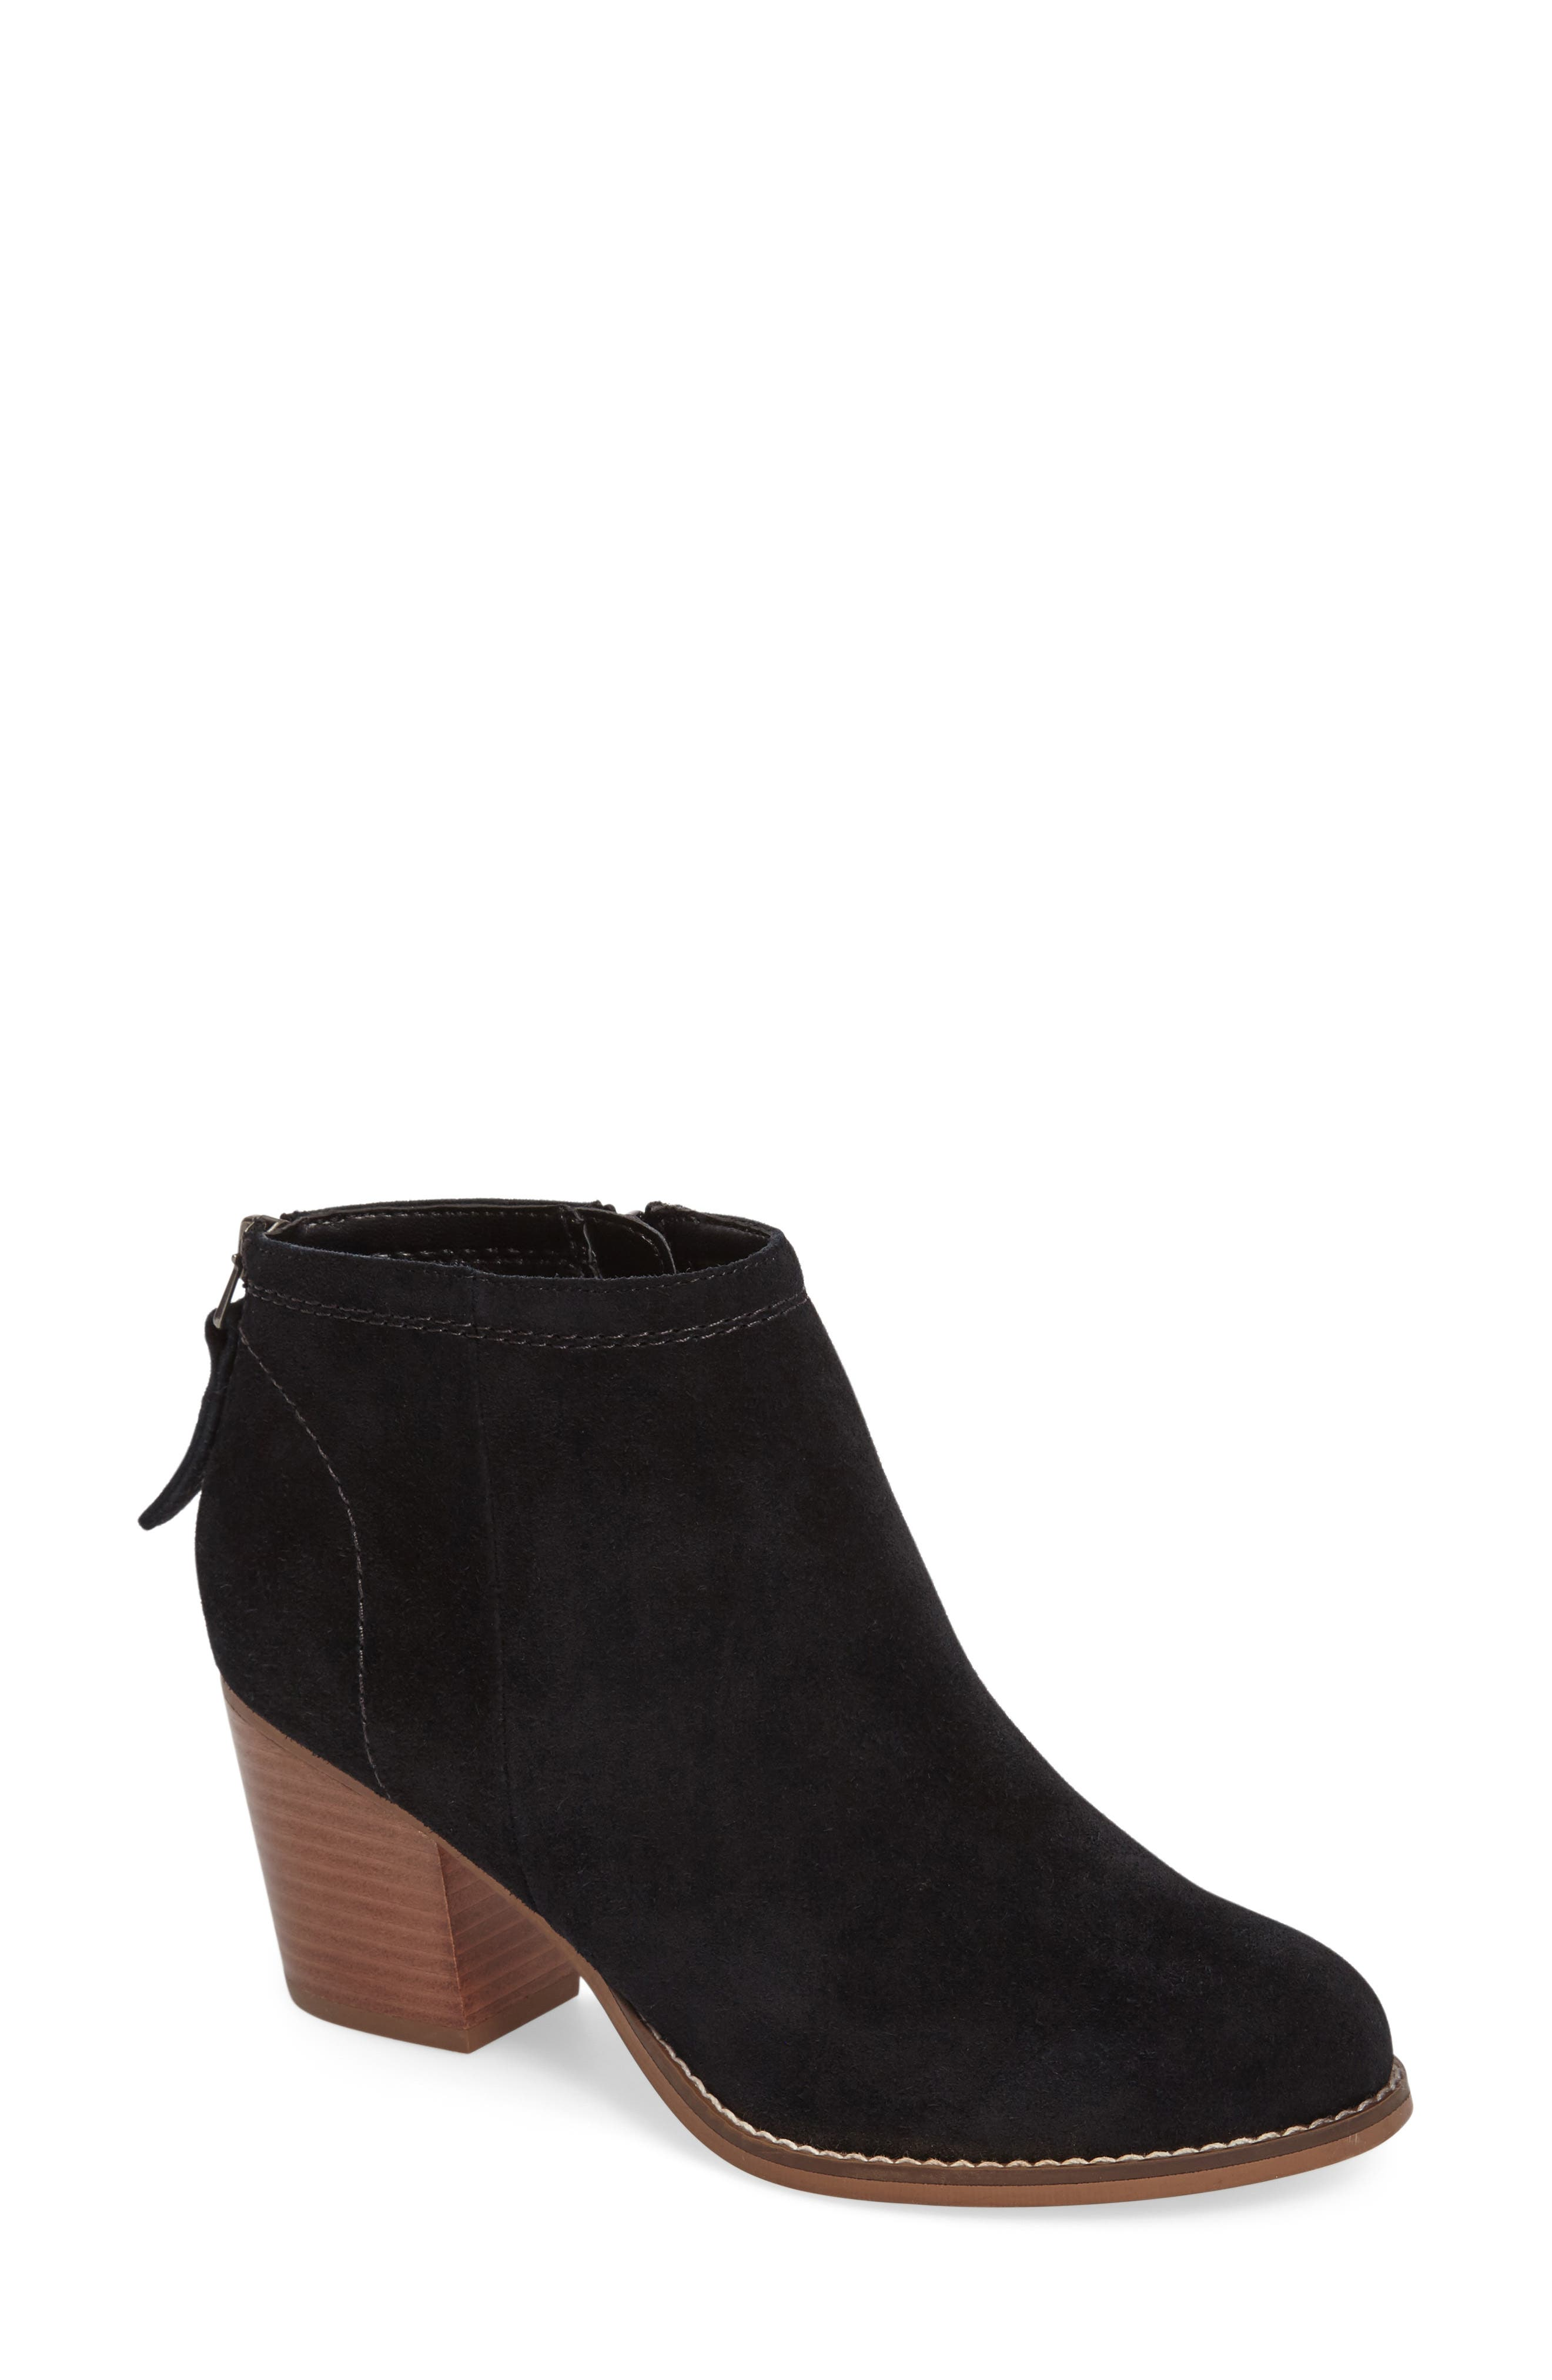 Alternate Image 1 Selected - Sole Society Eloise Bootie (Women)